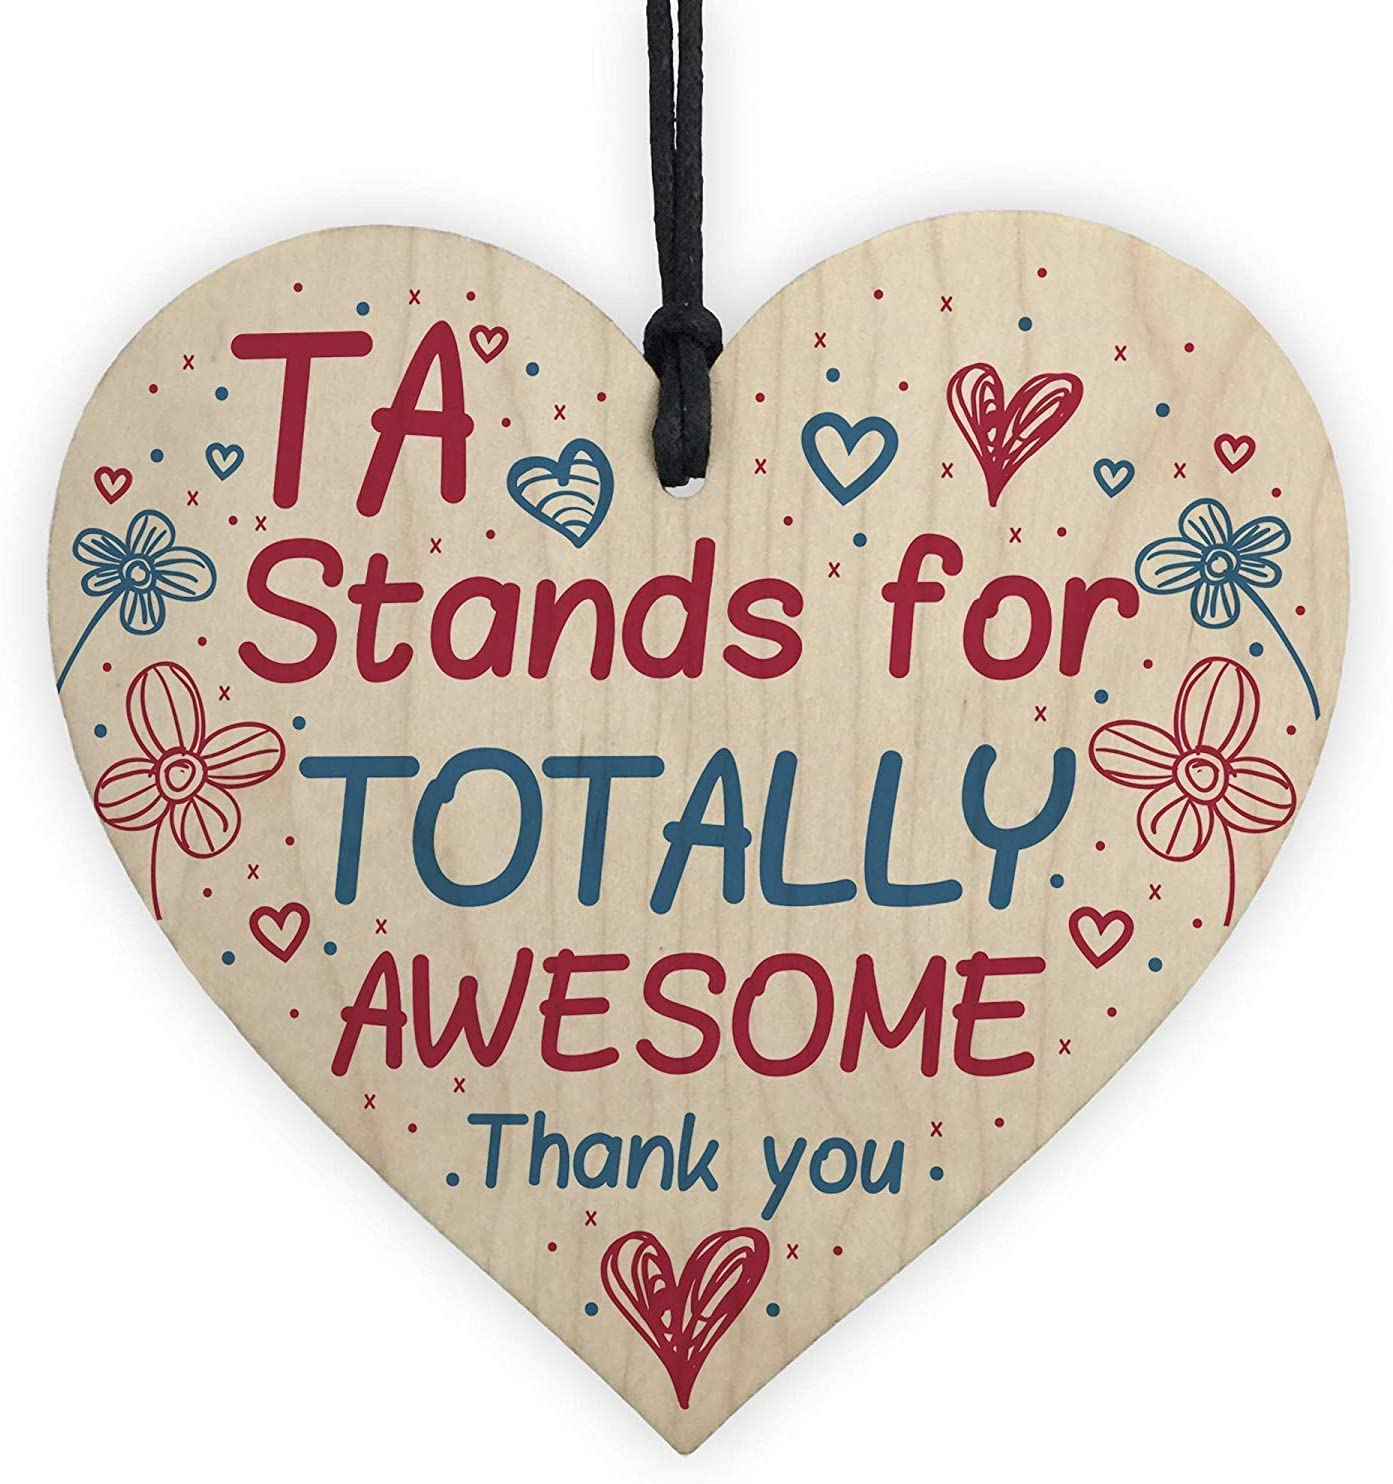 Rupert Gibsona TA Teaching Assistant Thank You Gifts Teacher End of Year School Leaving Art Decor Heart-Shaped Tin Sign Home House Coffee Beer Drink Bar